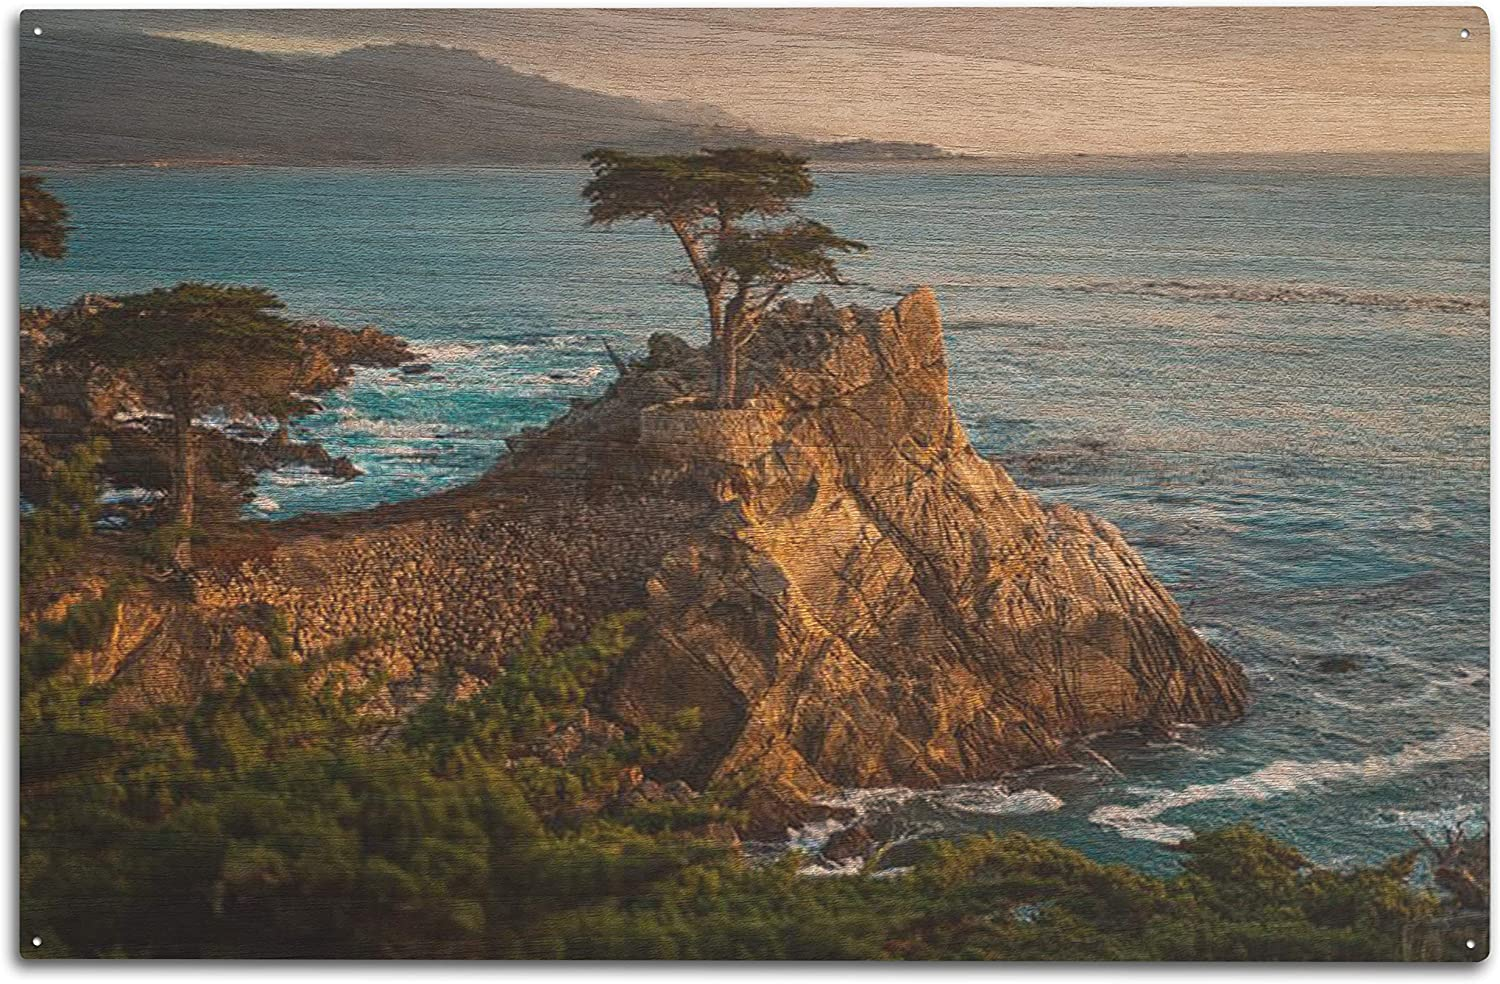 Lone Cypress Tree on The Rocky Shores of Carmel, California 9023593 (10x15 Wood Wall Sign, Wall Decor Ready to Hang)